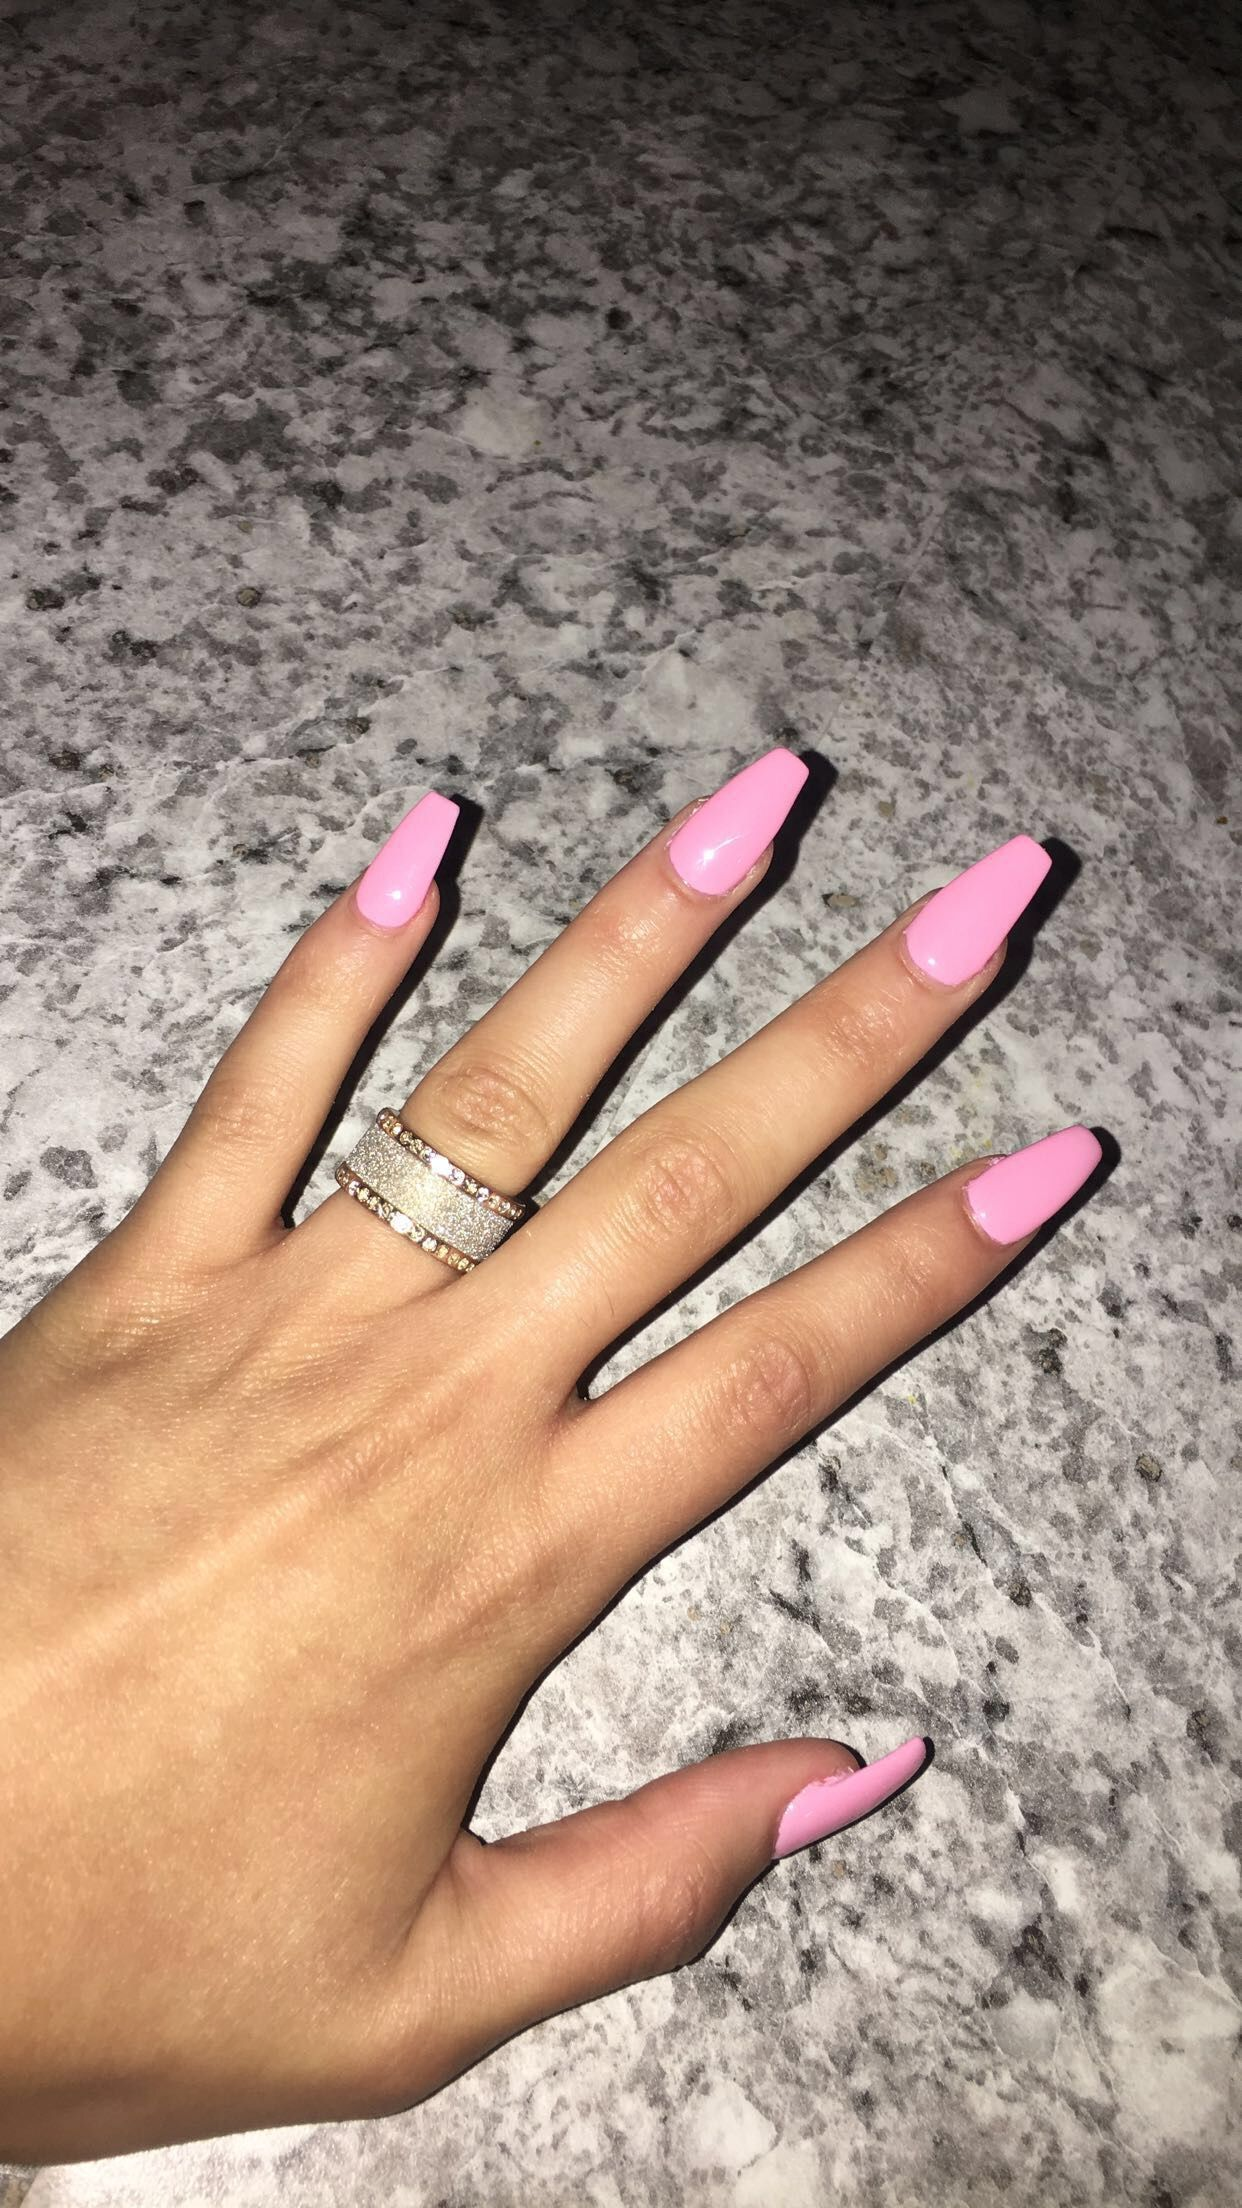 Babypink Coffin Acrylic Nails Acrylicnails In 2020 Acrylic Nail Art Nail Art Videos Diy Acrylic Nails